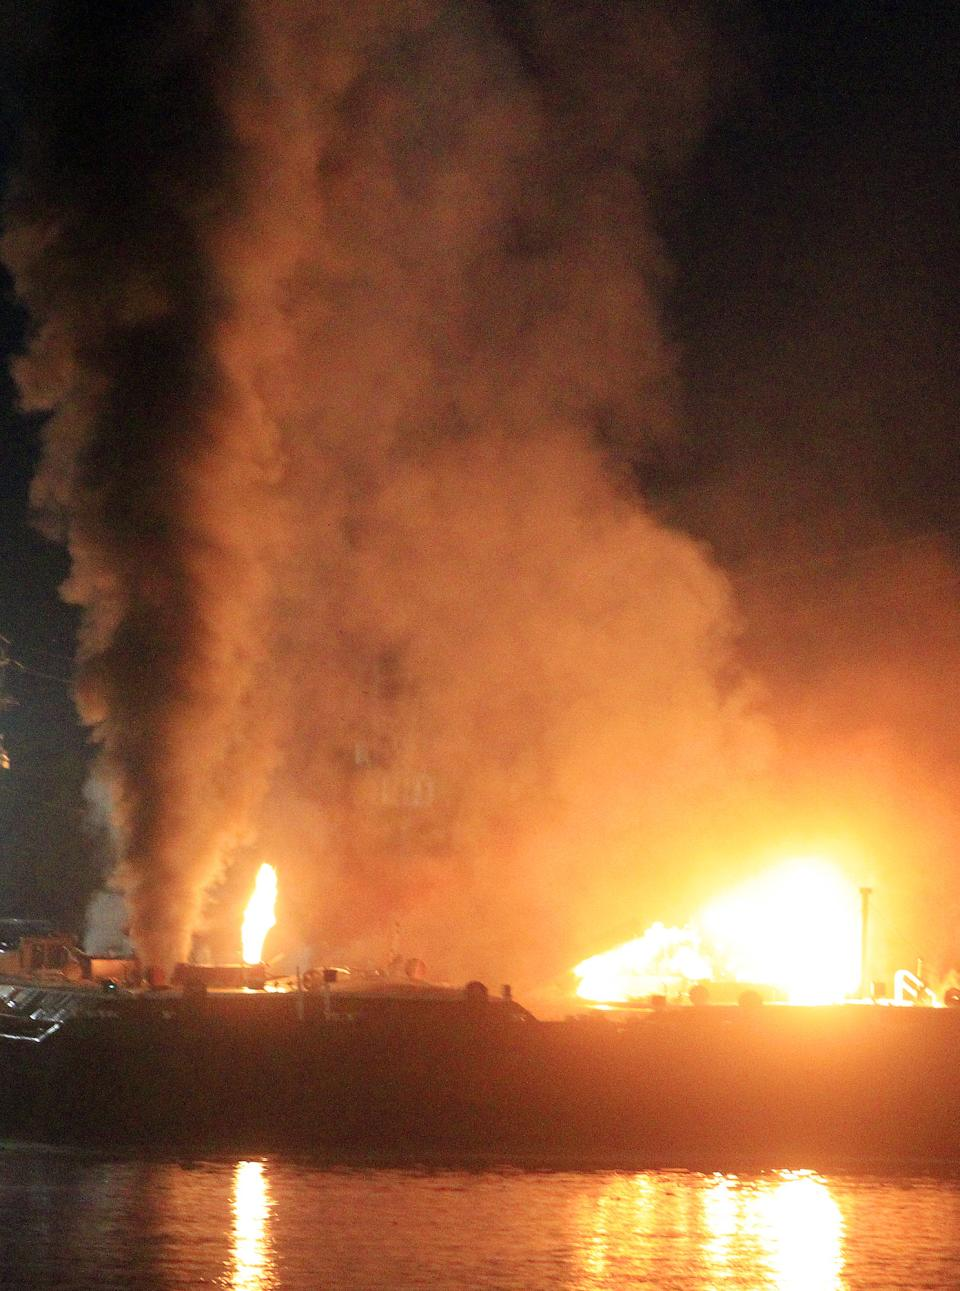 Fire burns aboard two fuel barges along Mobile River after explosions sent three workers to the hospital. Fire officials have pulled units back from fighting the fire due to the explosions and no immediate threat to lives. (AP Photo/Press Register, Glenn Baeske)